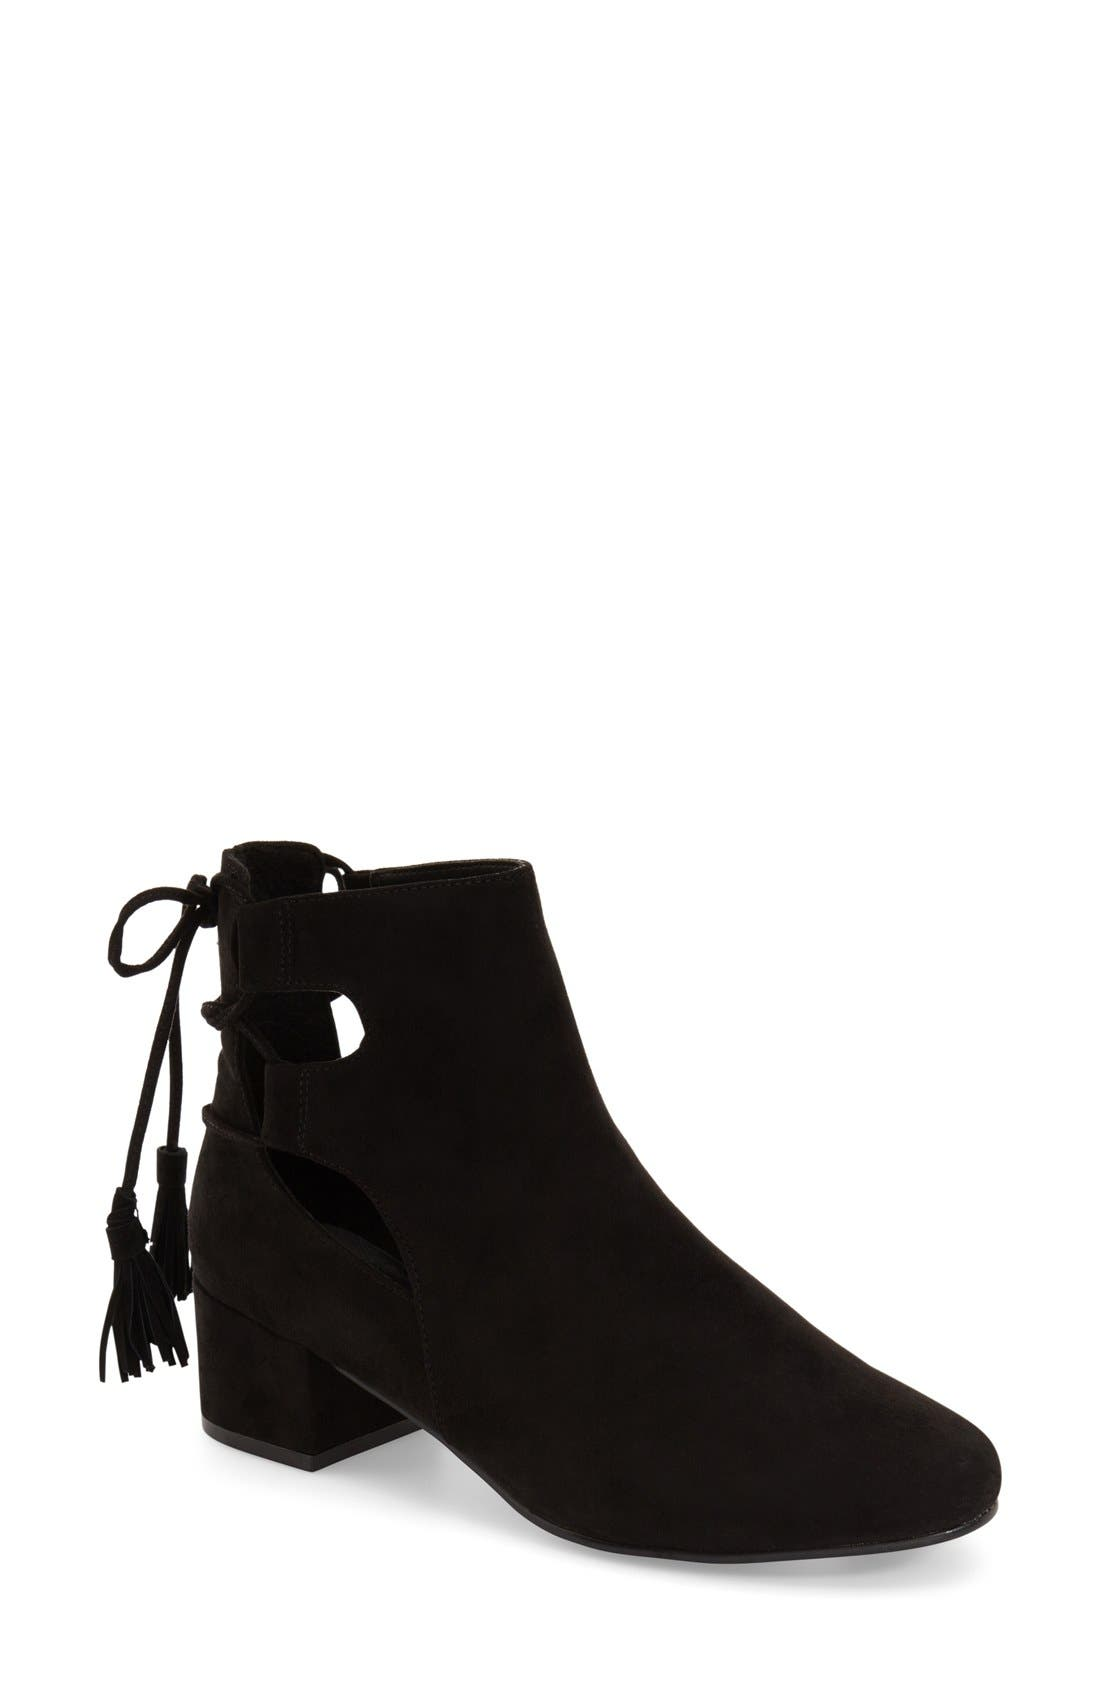 Main Image - Topshop 'Kimble' Lace-Up Suede Boot (Women)